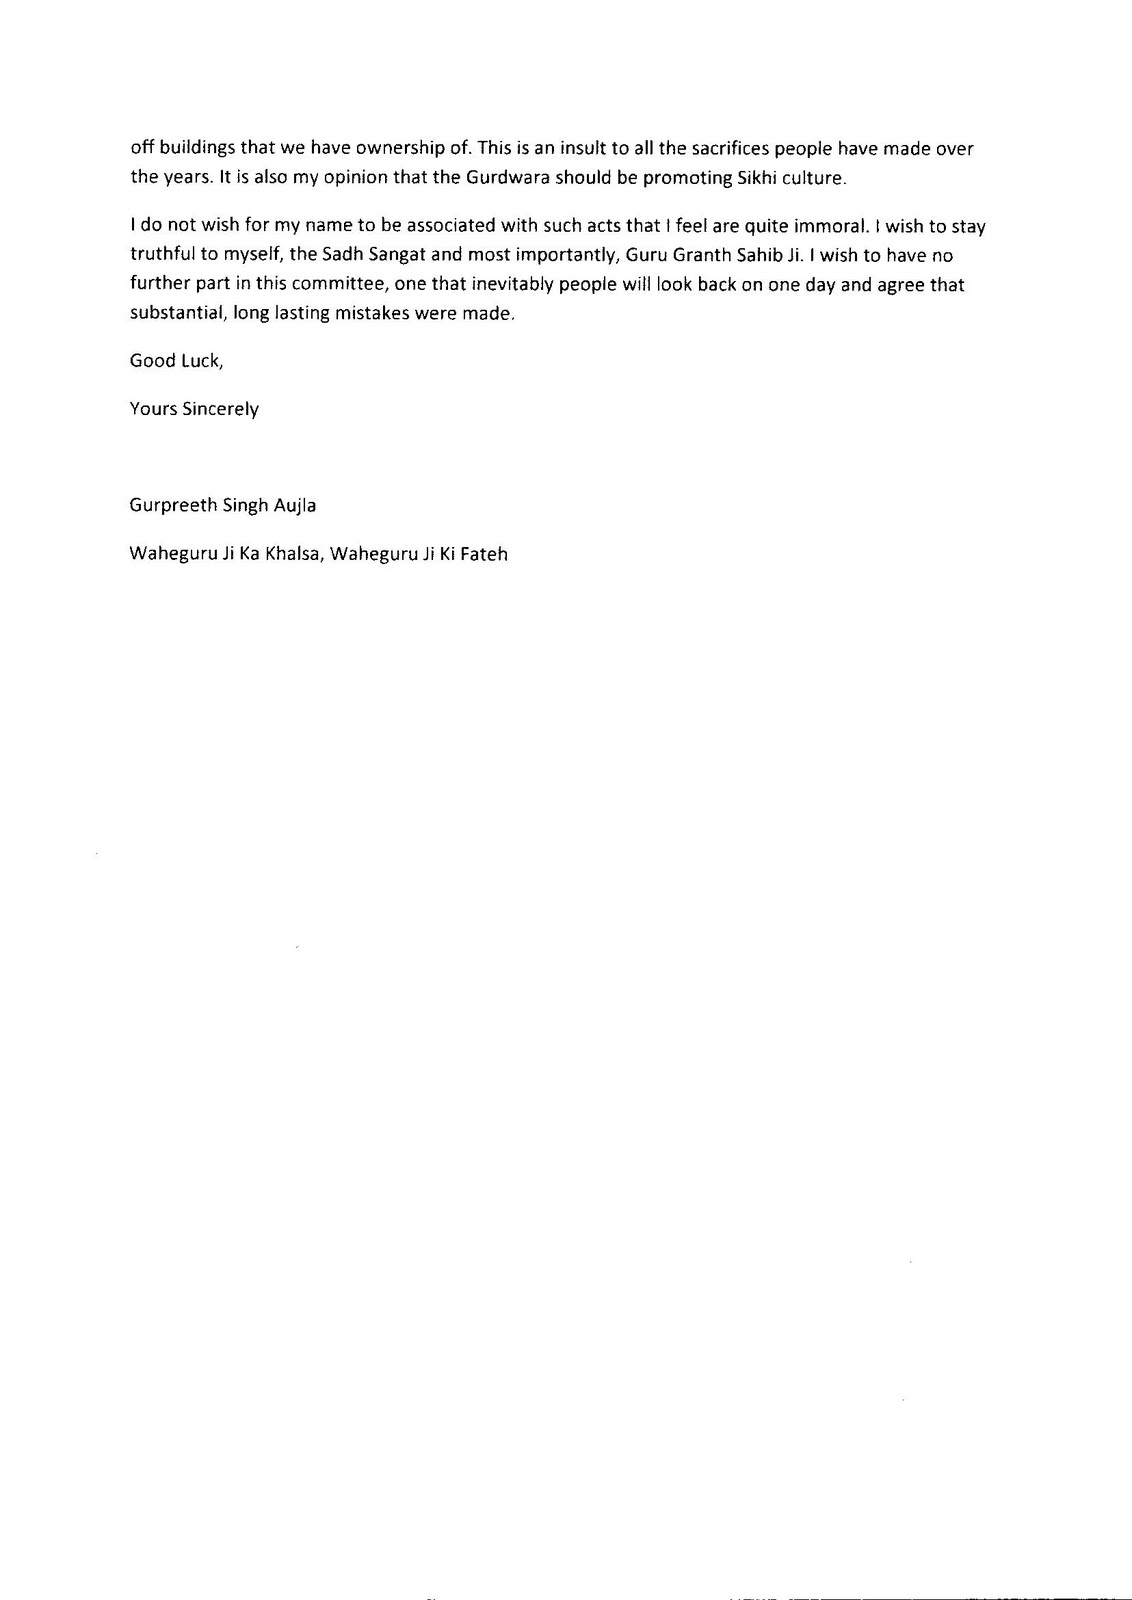 Sample board member resignation letter gallery letter format sample resignation letter from board image collections letter sample resignation letter from board member choice image spiritdancerdesigns Image collections